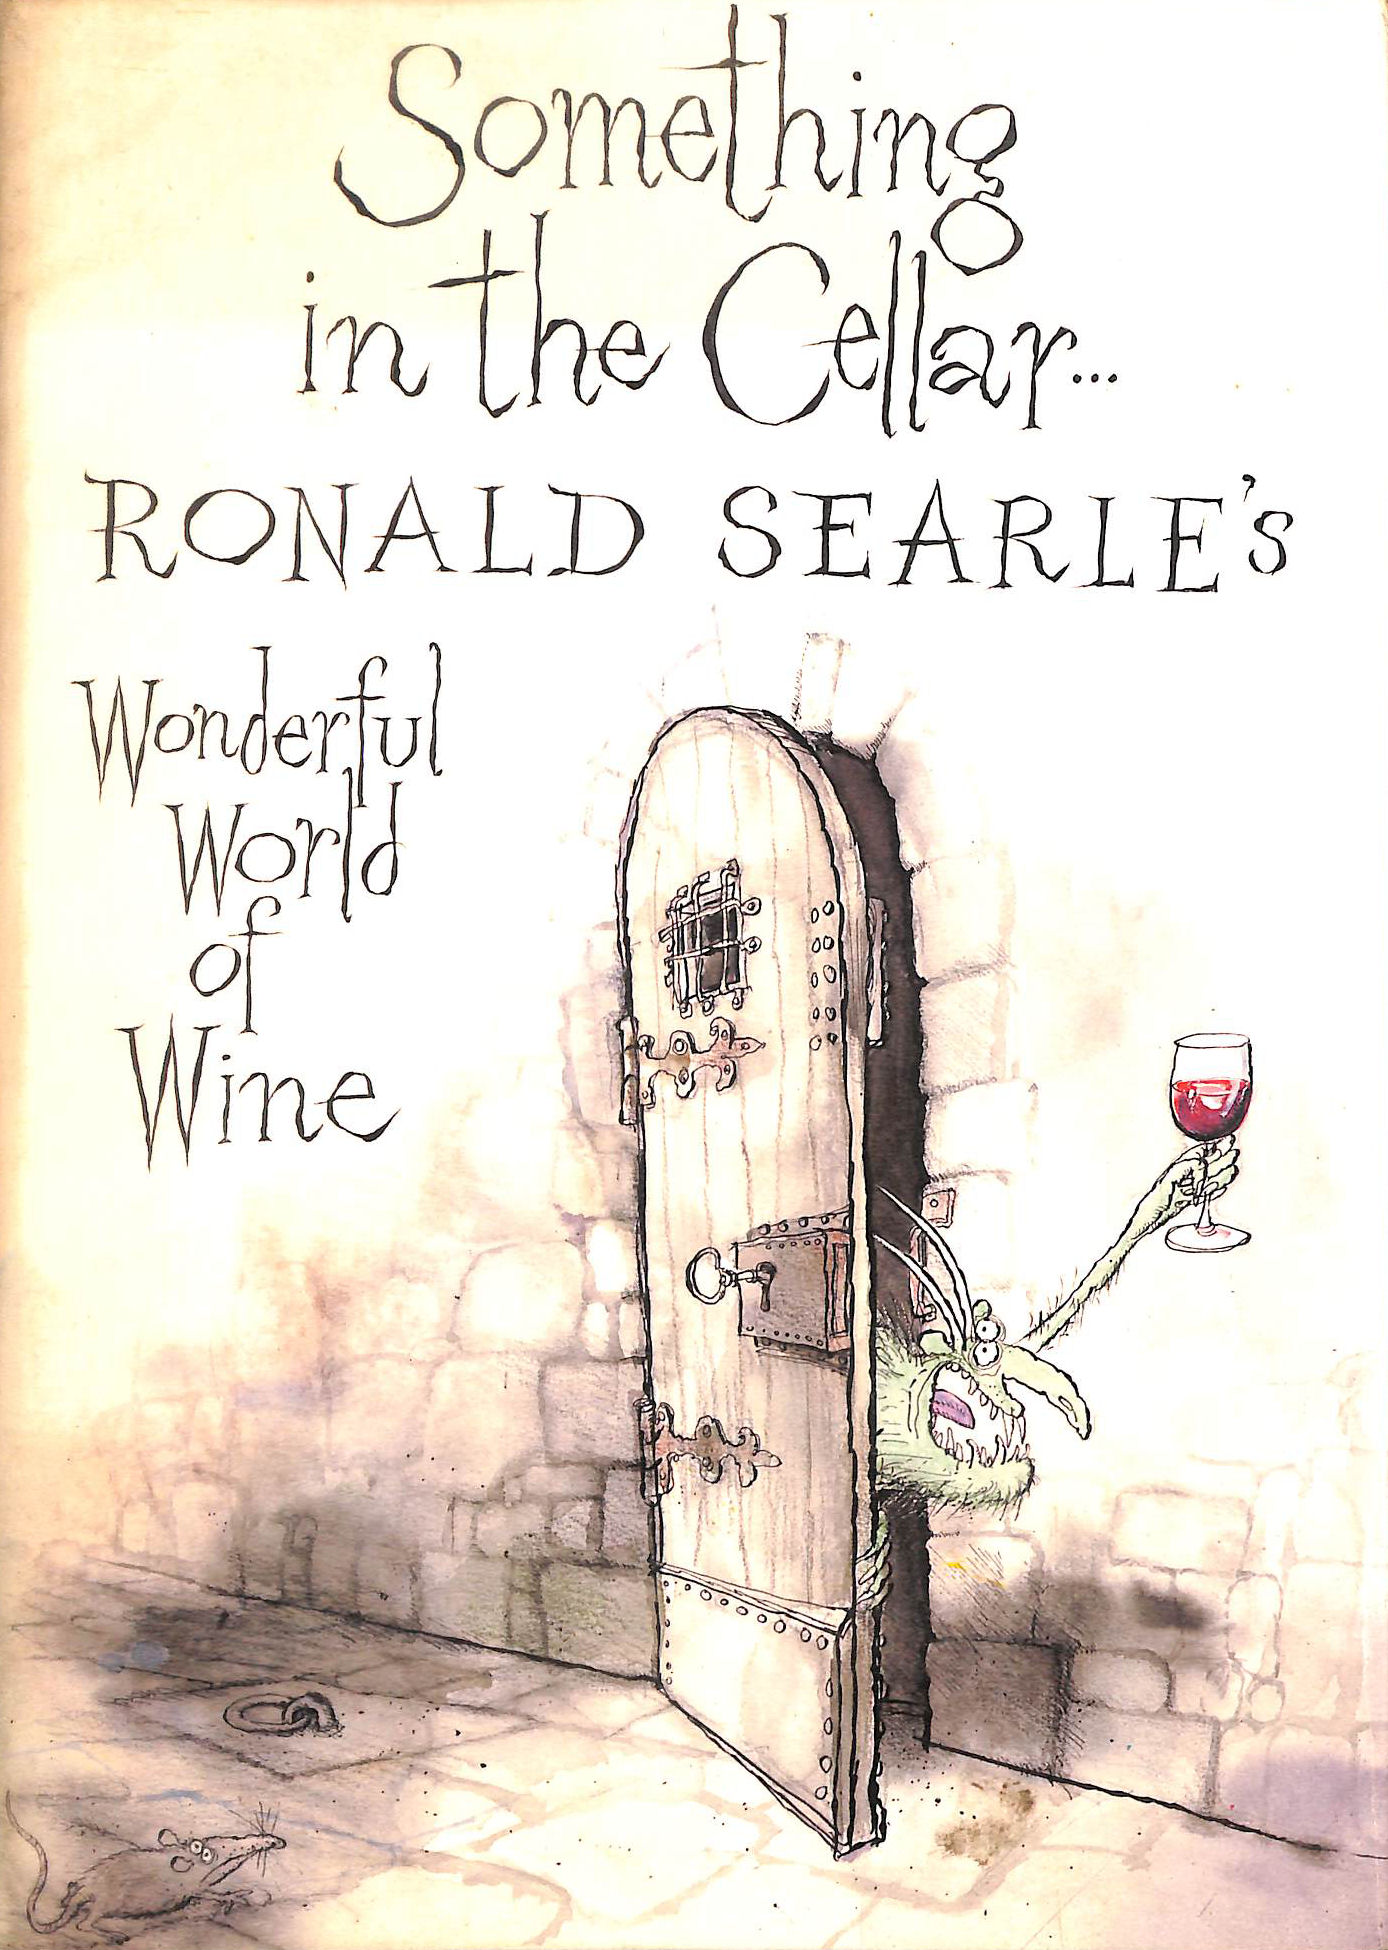 Image for Something in the Cellar (Ronald Searle's Wonderful World of Wine)